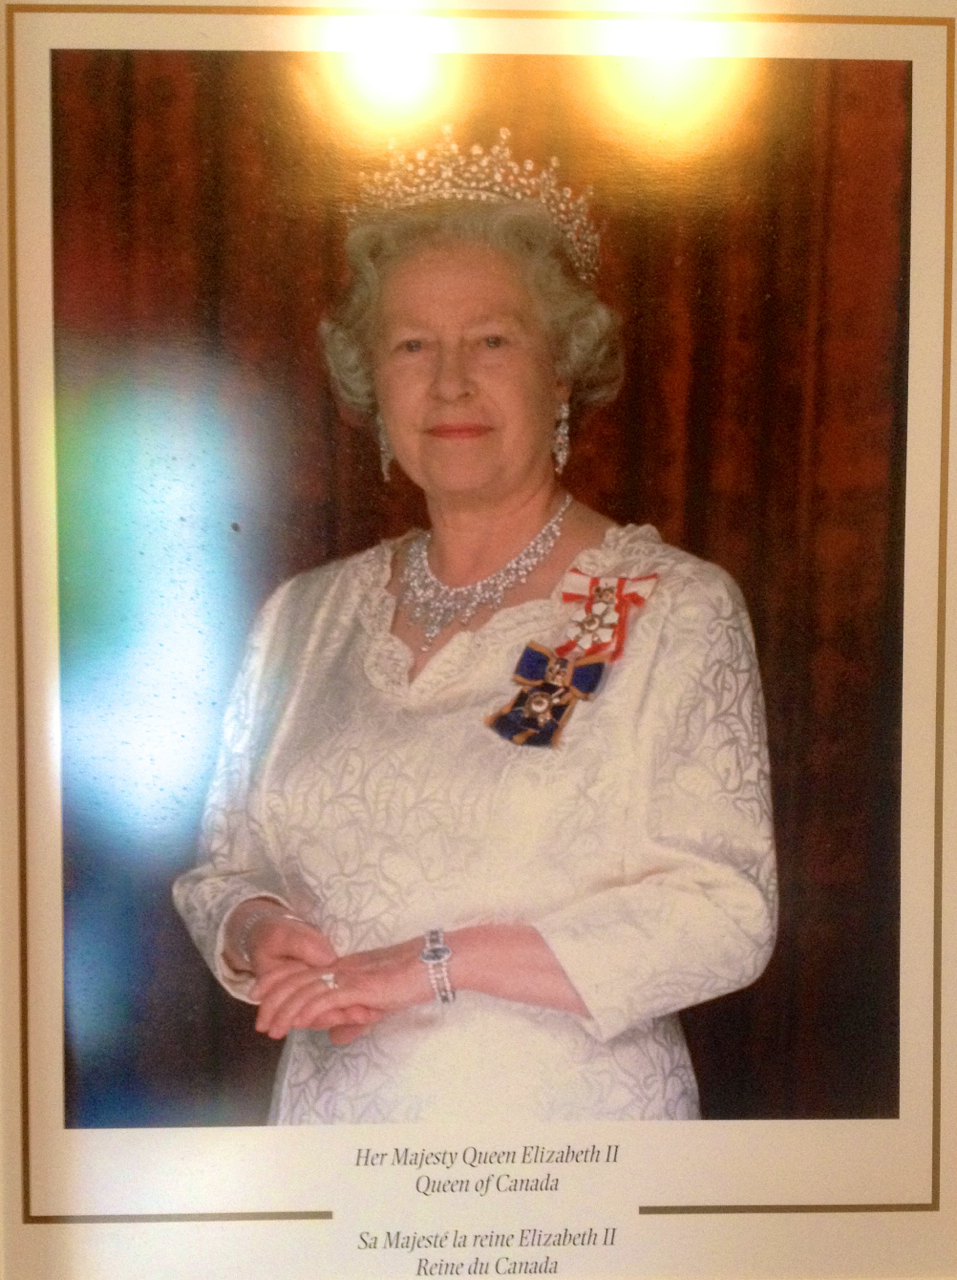 An image of the Queen of Canada adorns the entrance. August 22, 2014.